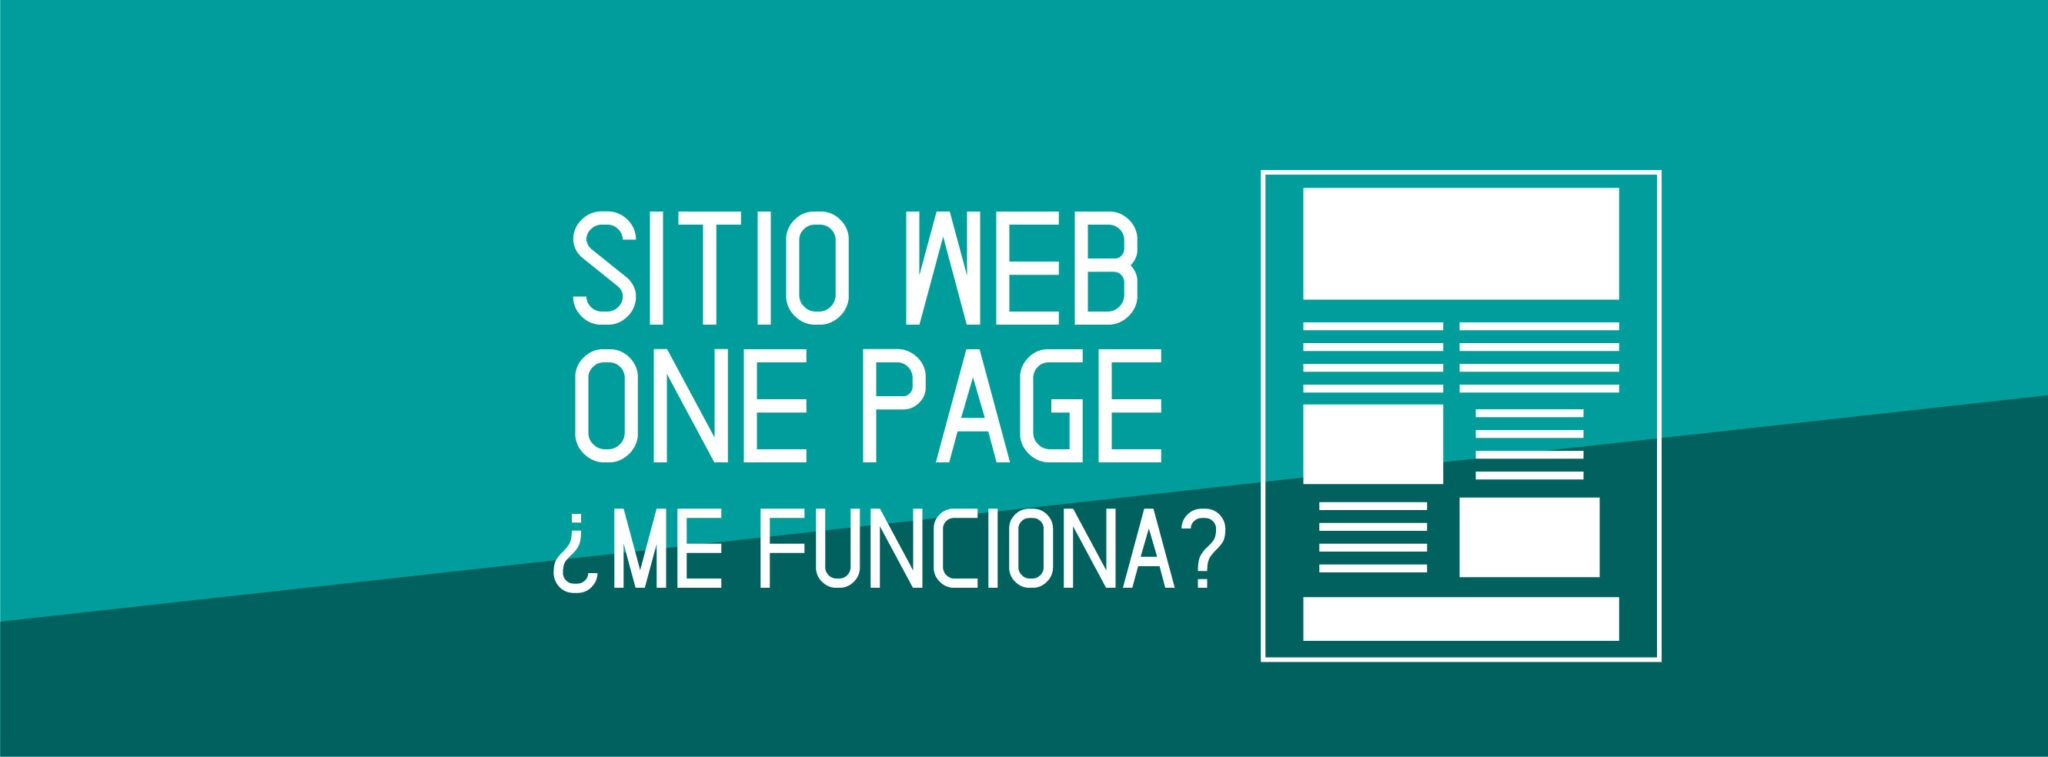 Sitio Web One Page ¿Me funciona?